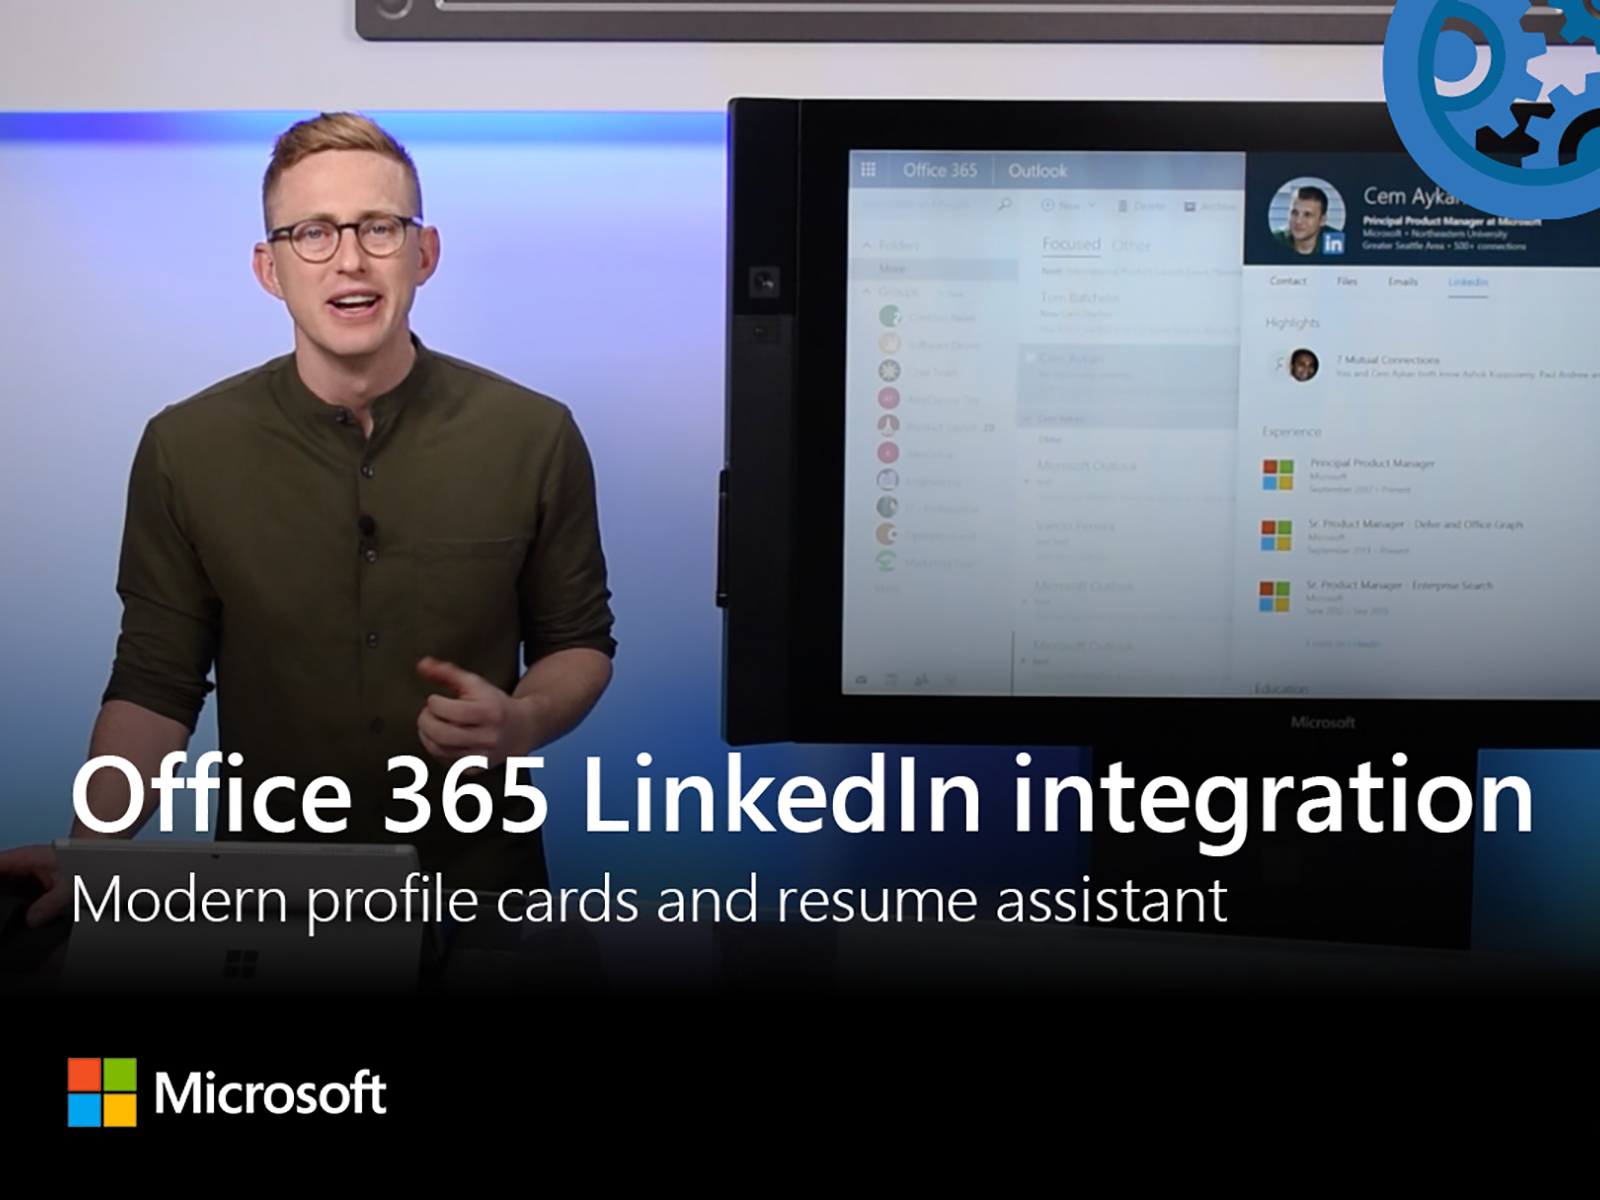 Microsoft Mechanics: Office 365 LinkedIn integration